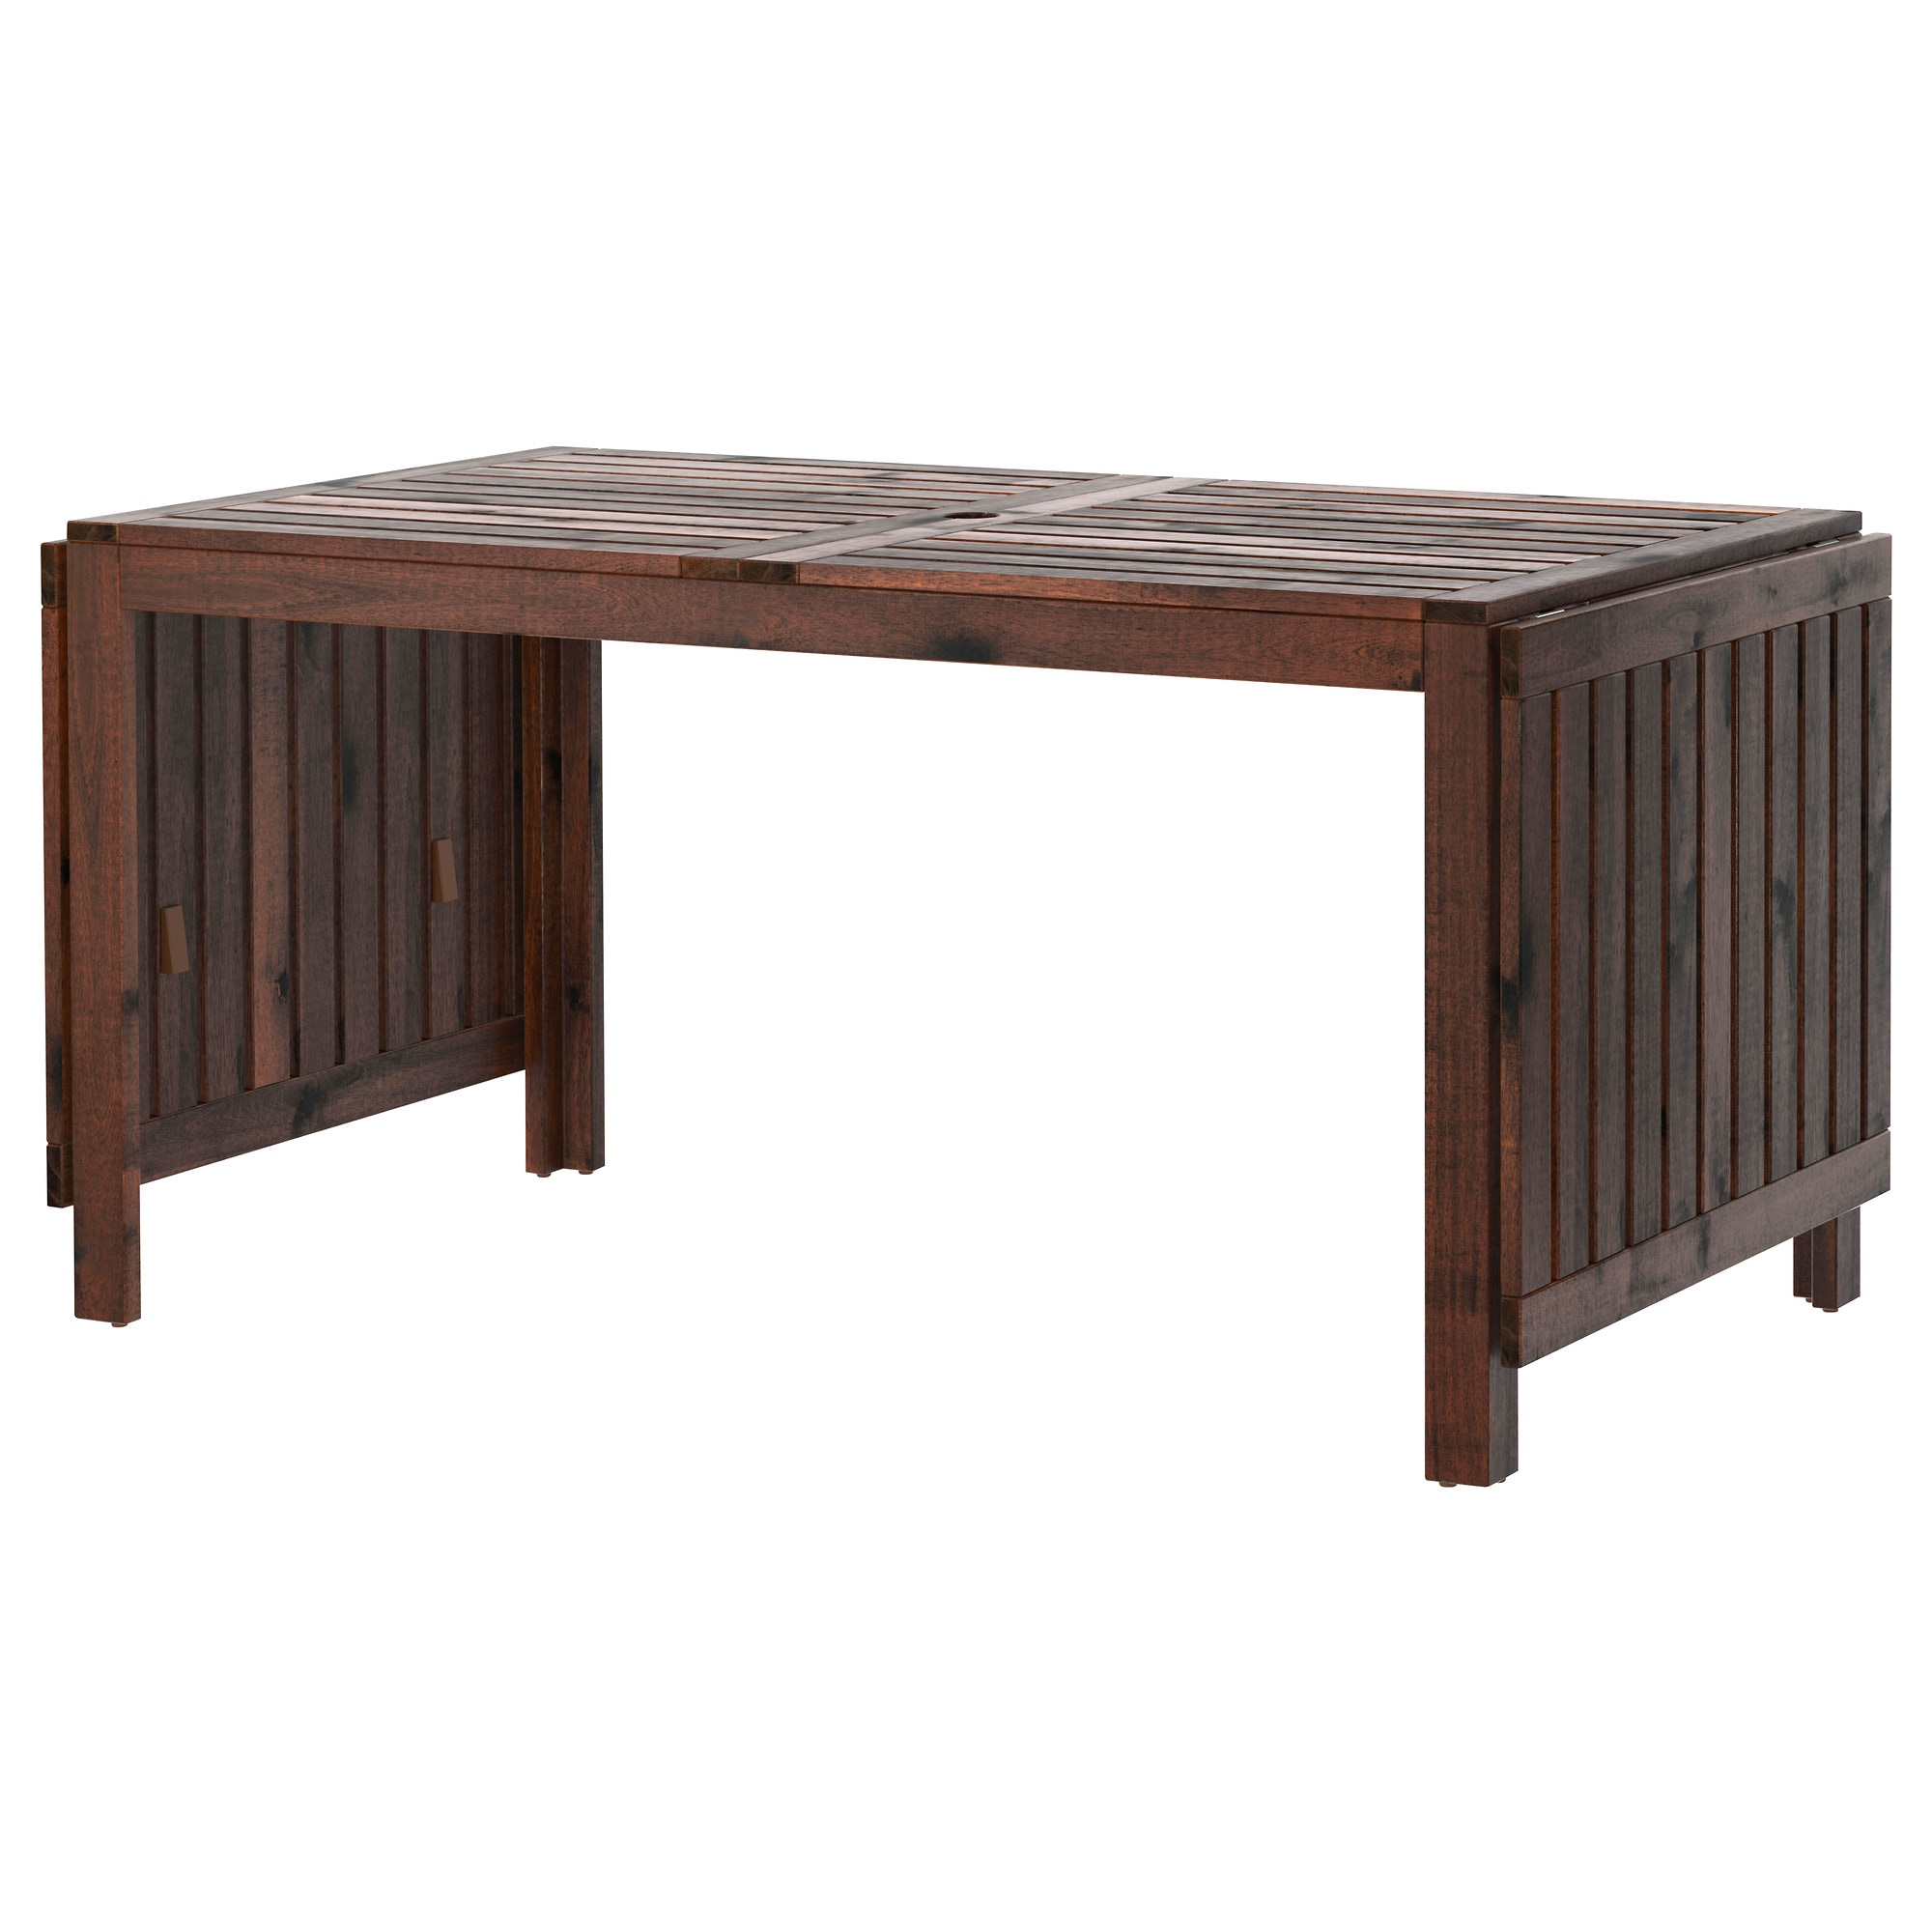 ÄpplarÖ Drop Leaf Table Outdoor Brown Stained